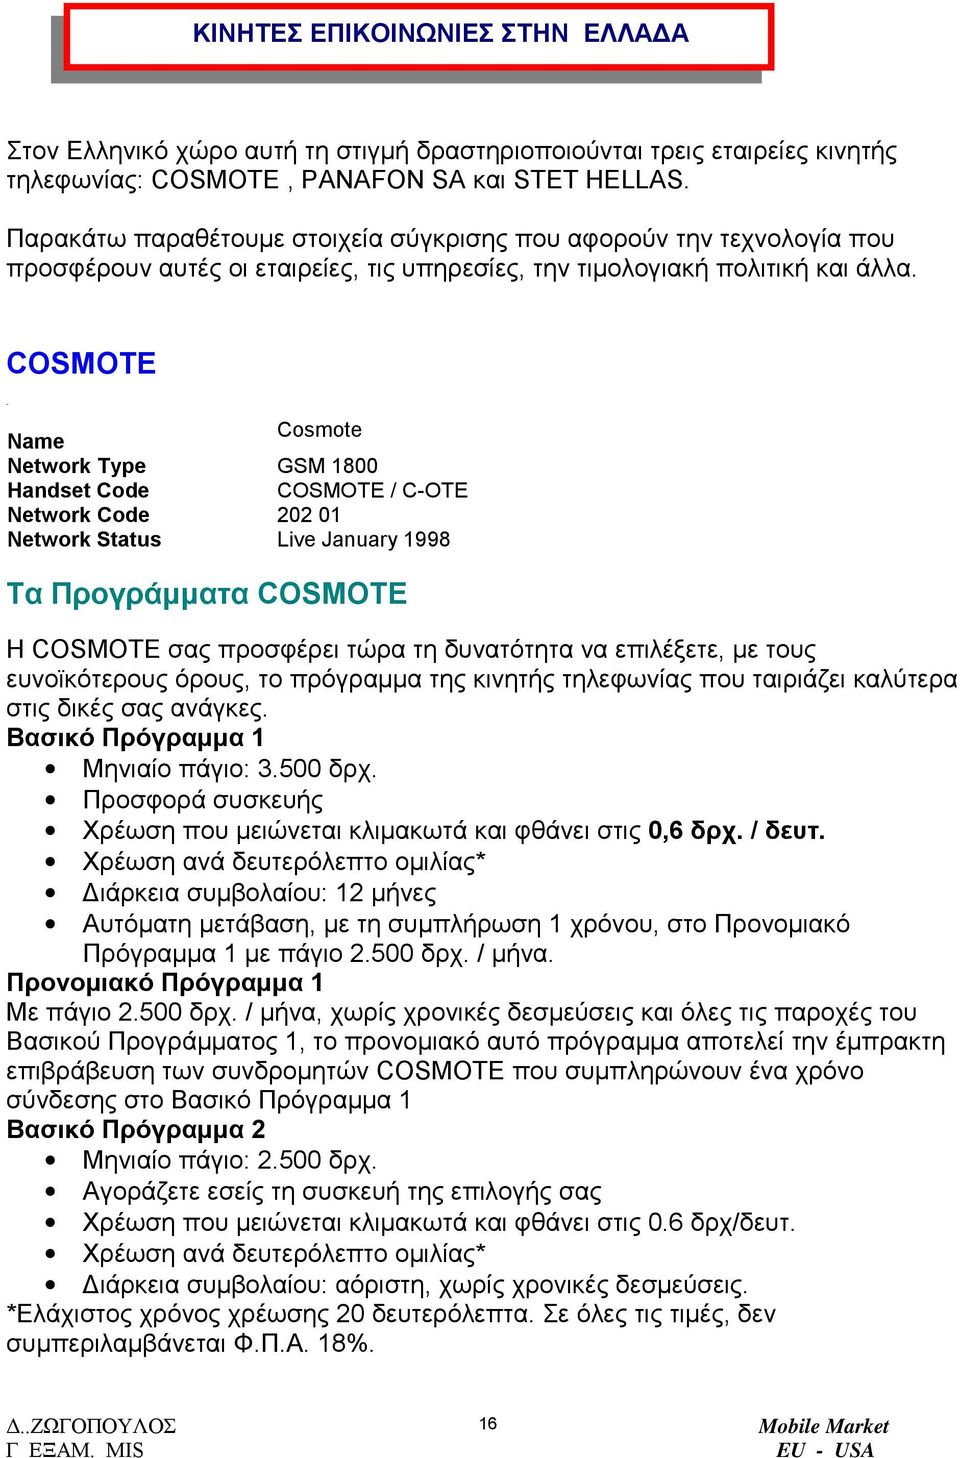 COSMOTE Name Cosmote Network Type GSM 1800 Handset Code COSMOTE / C-OTE Network Code 202 01 Network Status Live January 1998 Τα Προγράµµατα COSMOTE Η COSMOTE σας προσφέρει τώρα τη δυνατότητα να